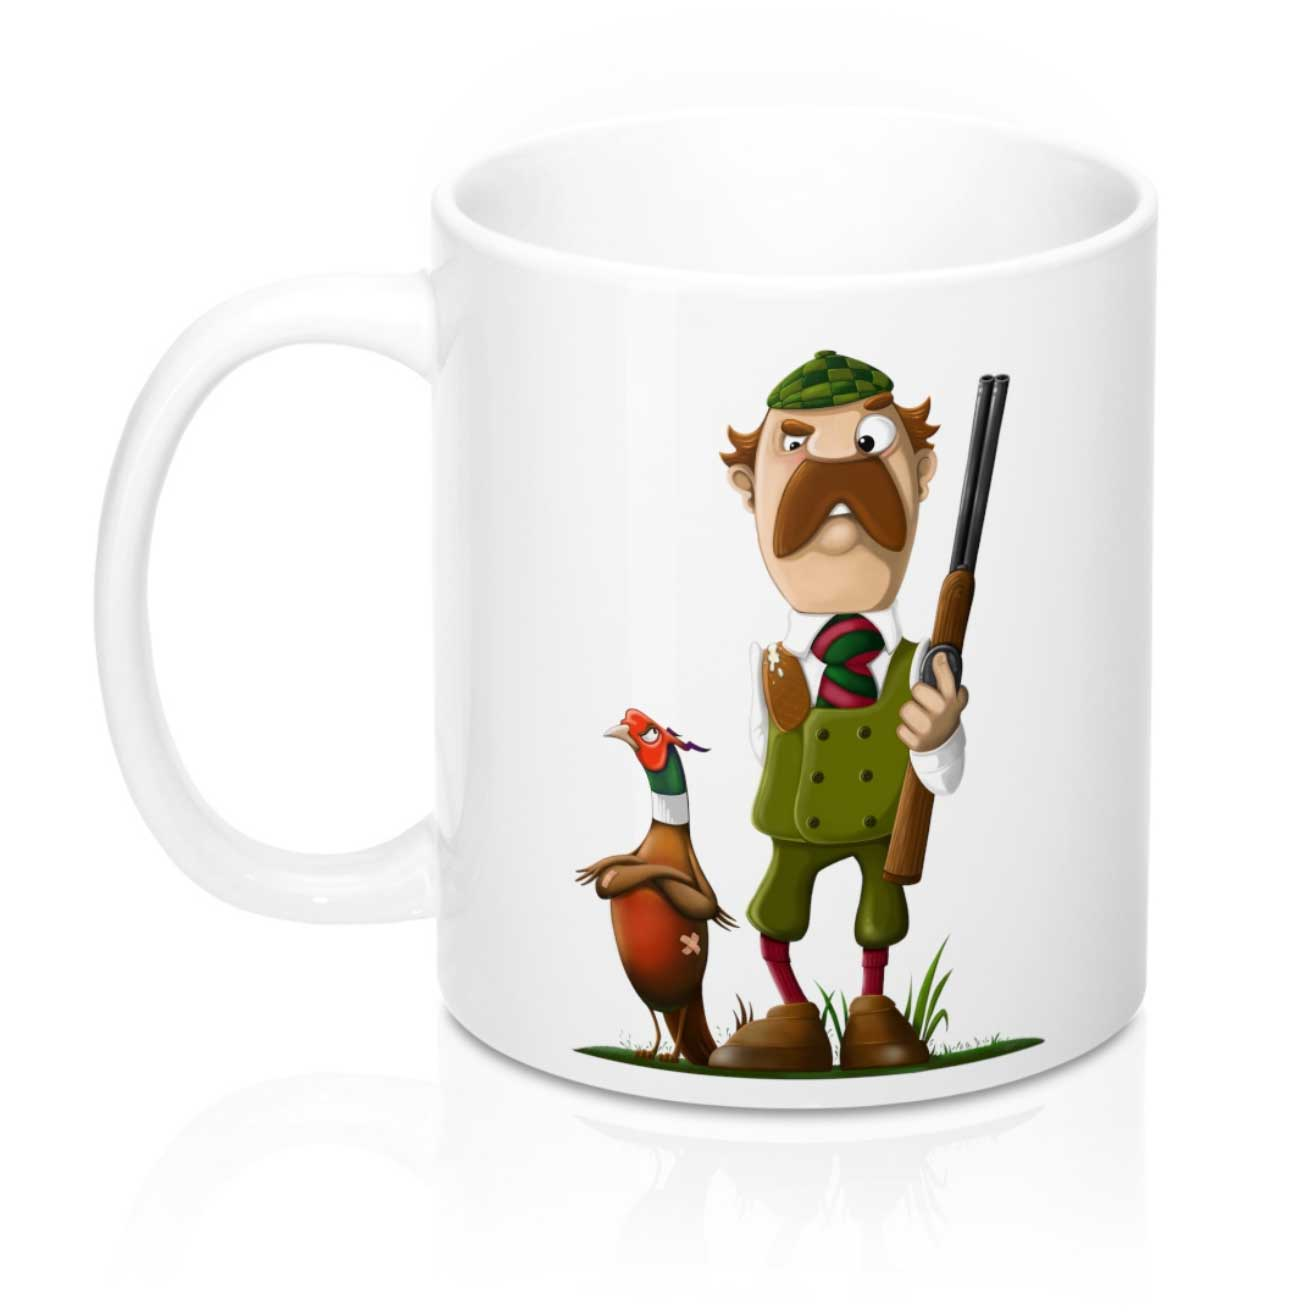 My 'Tommy Two Barrels & The Unpleasant Pheasant' mug design